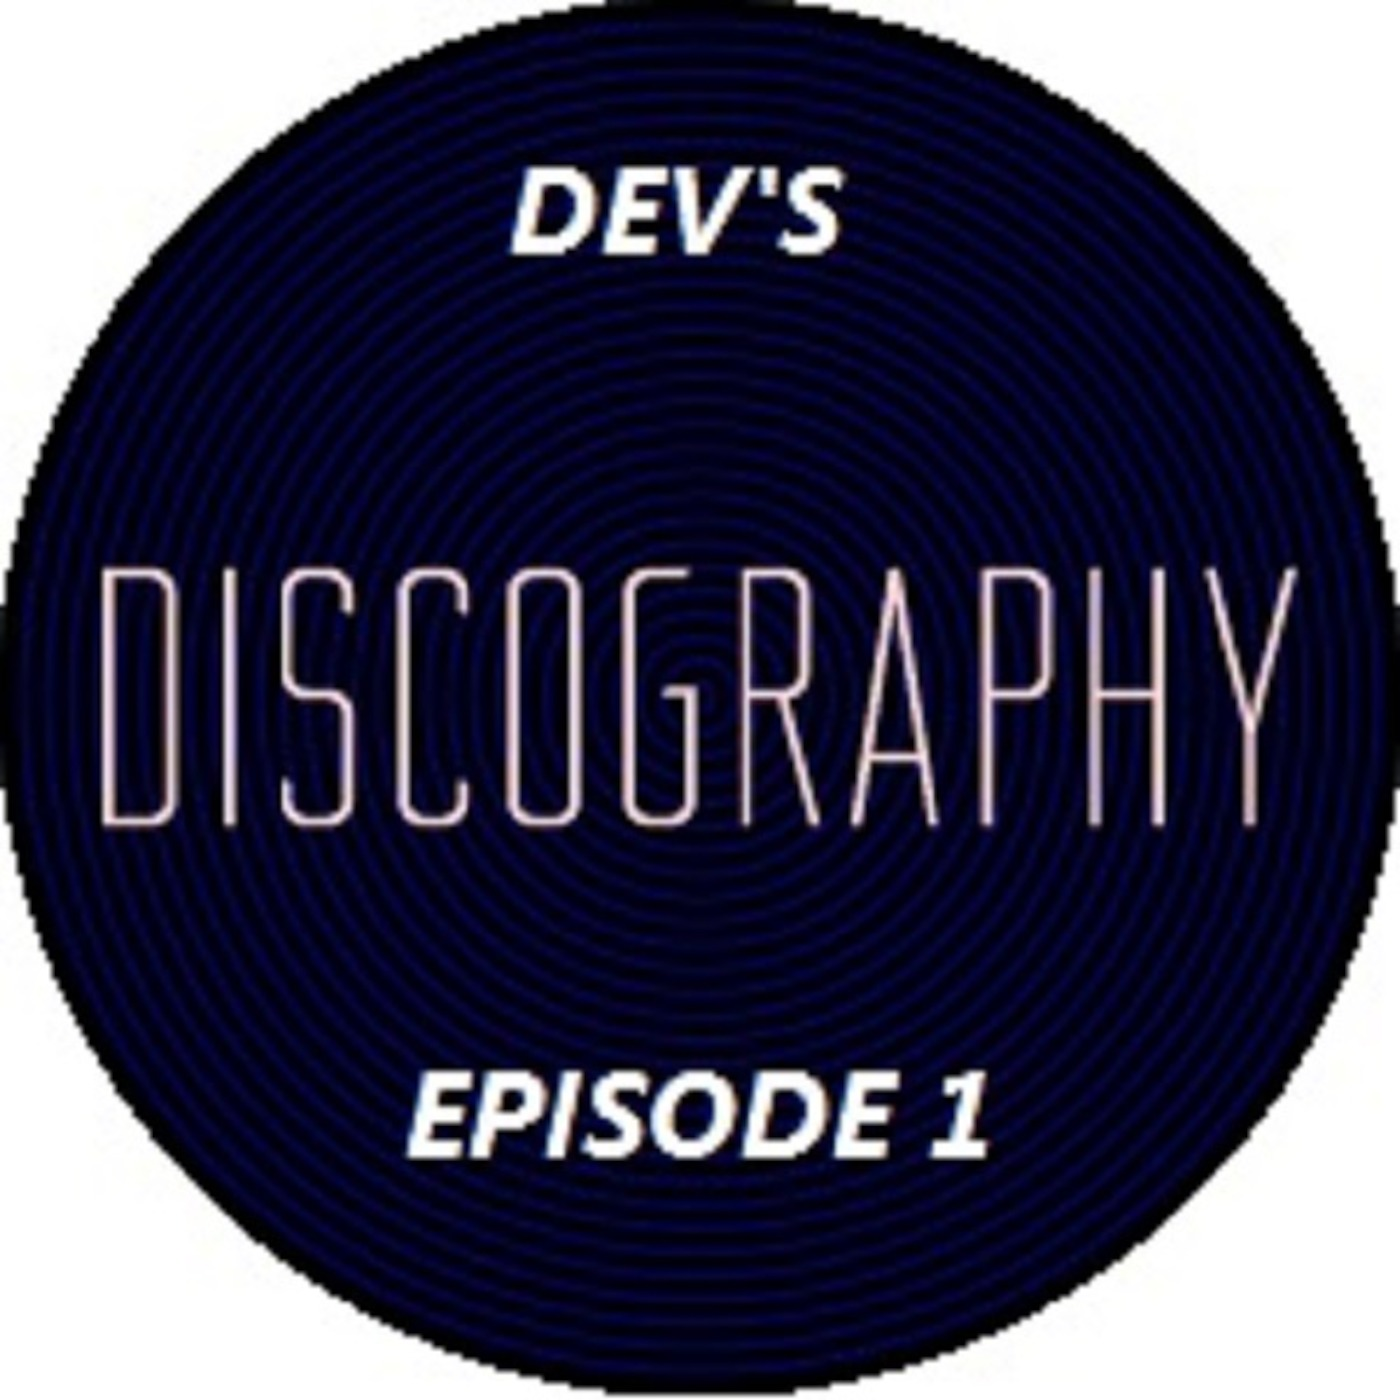 Dev's Discography Official Podcast